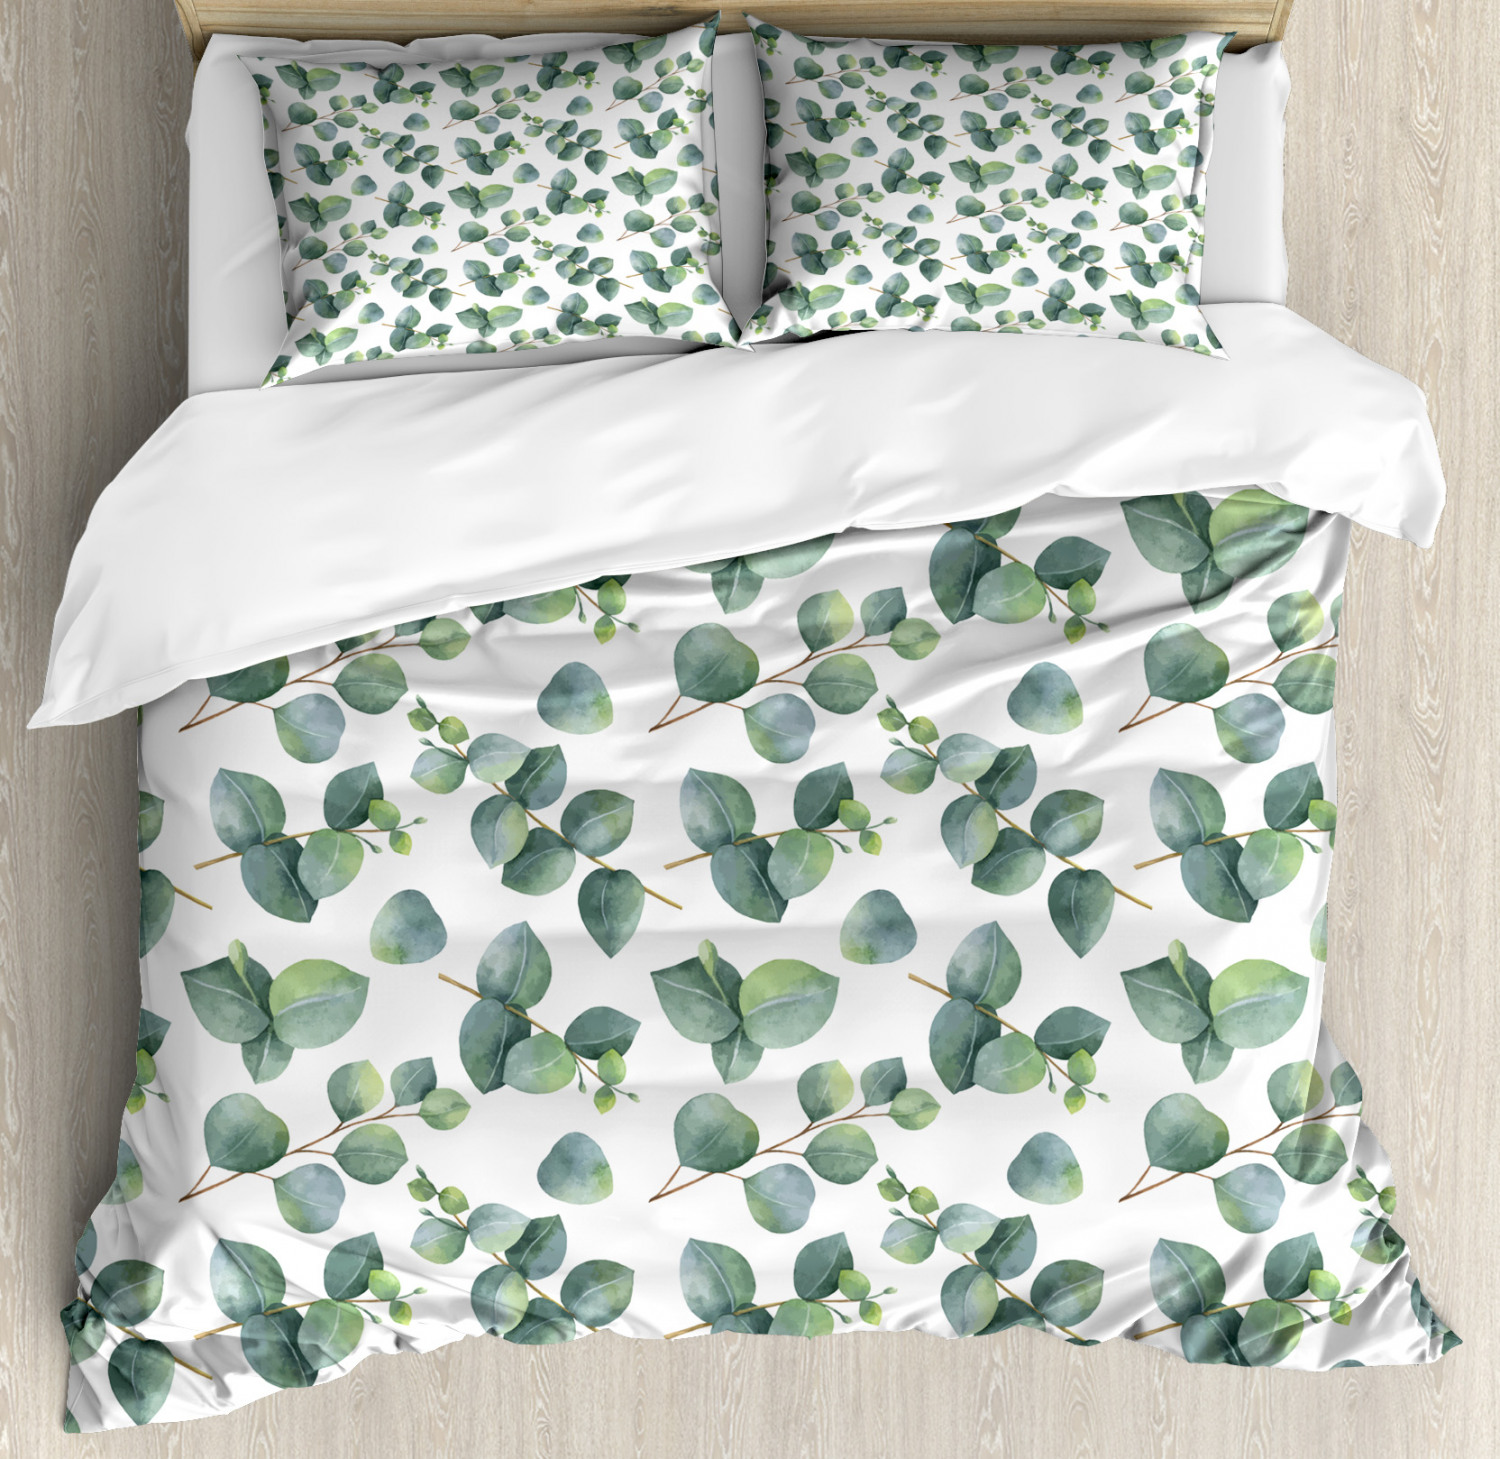 Leaf Duvet Cover Set with Pillow Shams Watercolor Eucalyptus Art Print